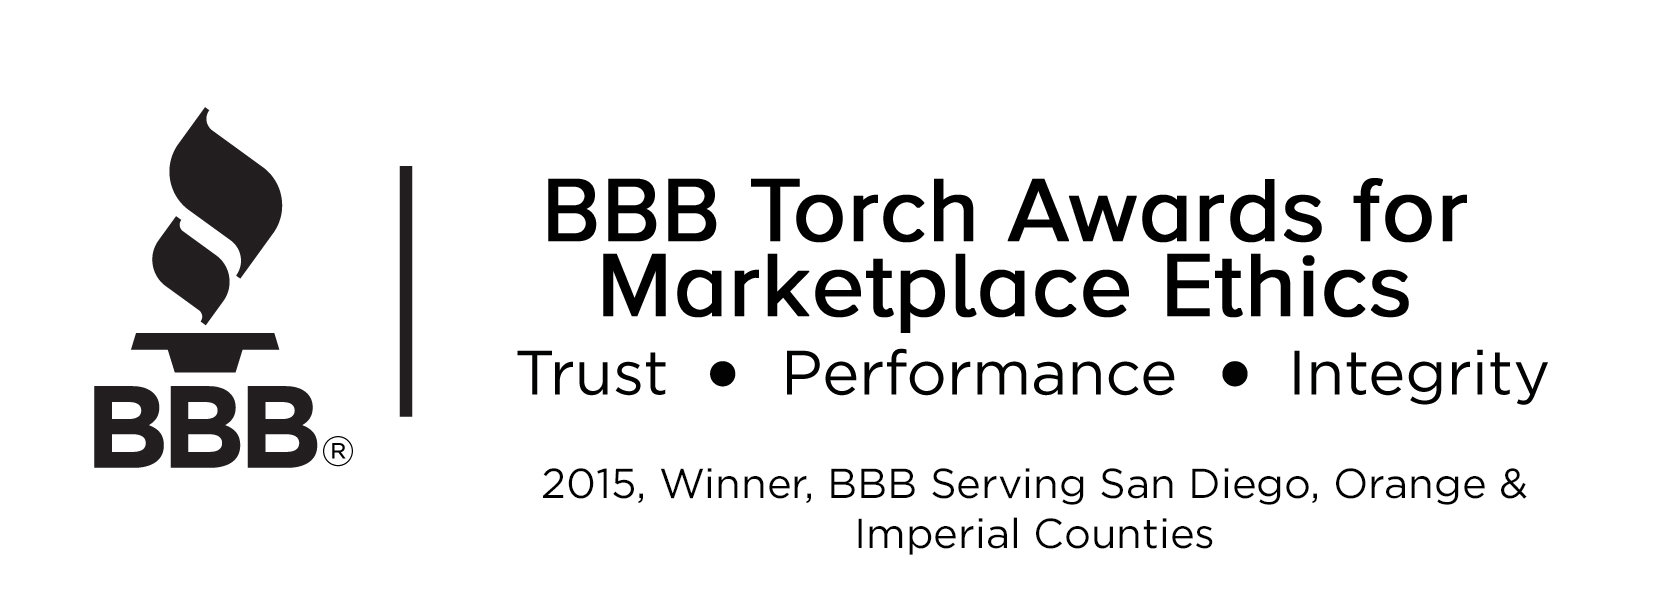 How to find the right contractor bbb s torch award points homeowners in the right direction - Contractor how to find one ...